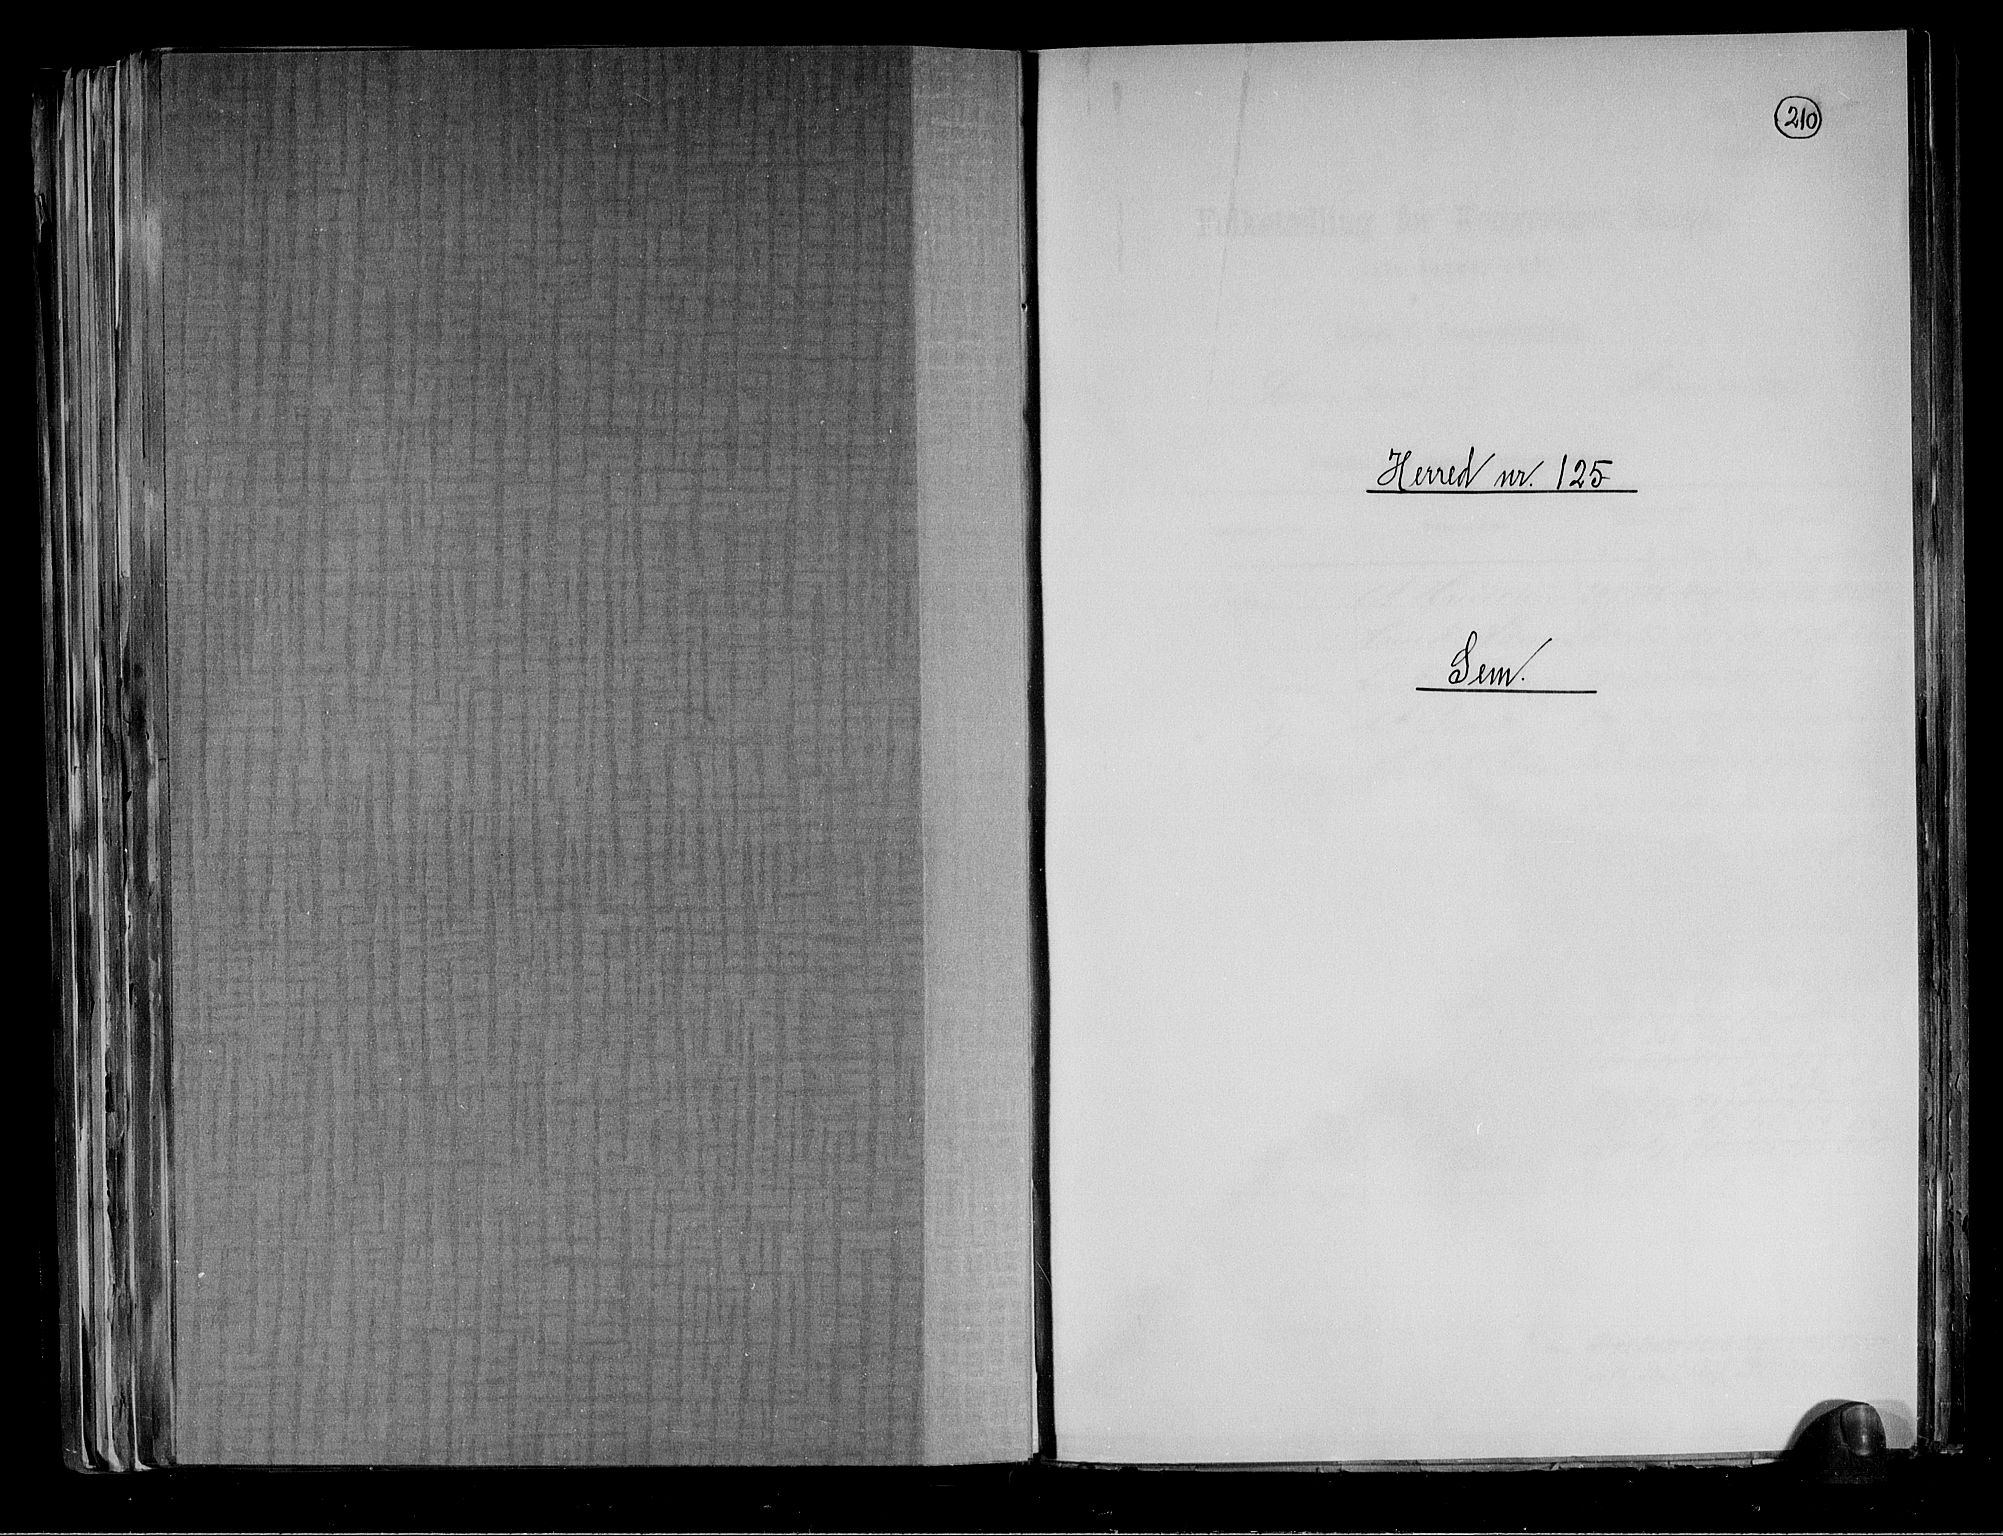 RA, Folketelling 1891 for 0721 Sem herred, 1891, s. 1